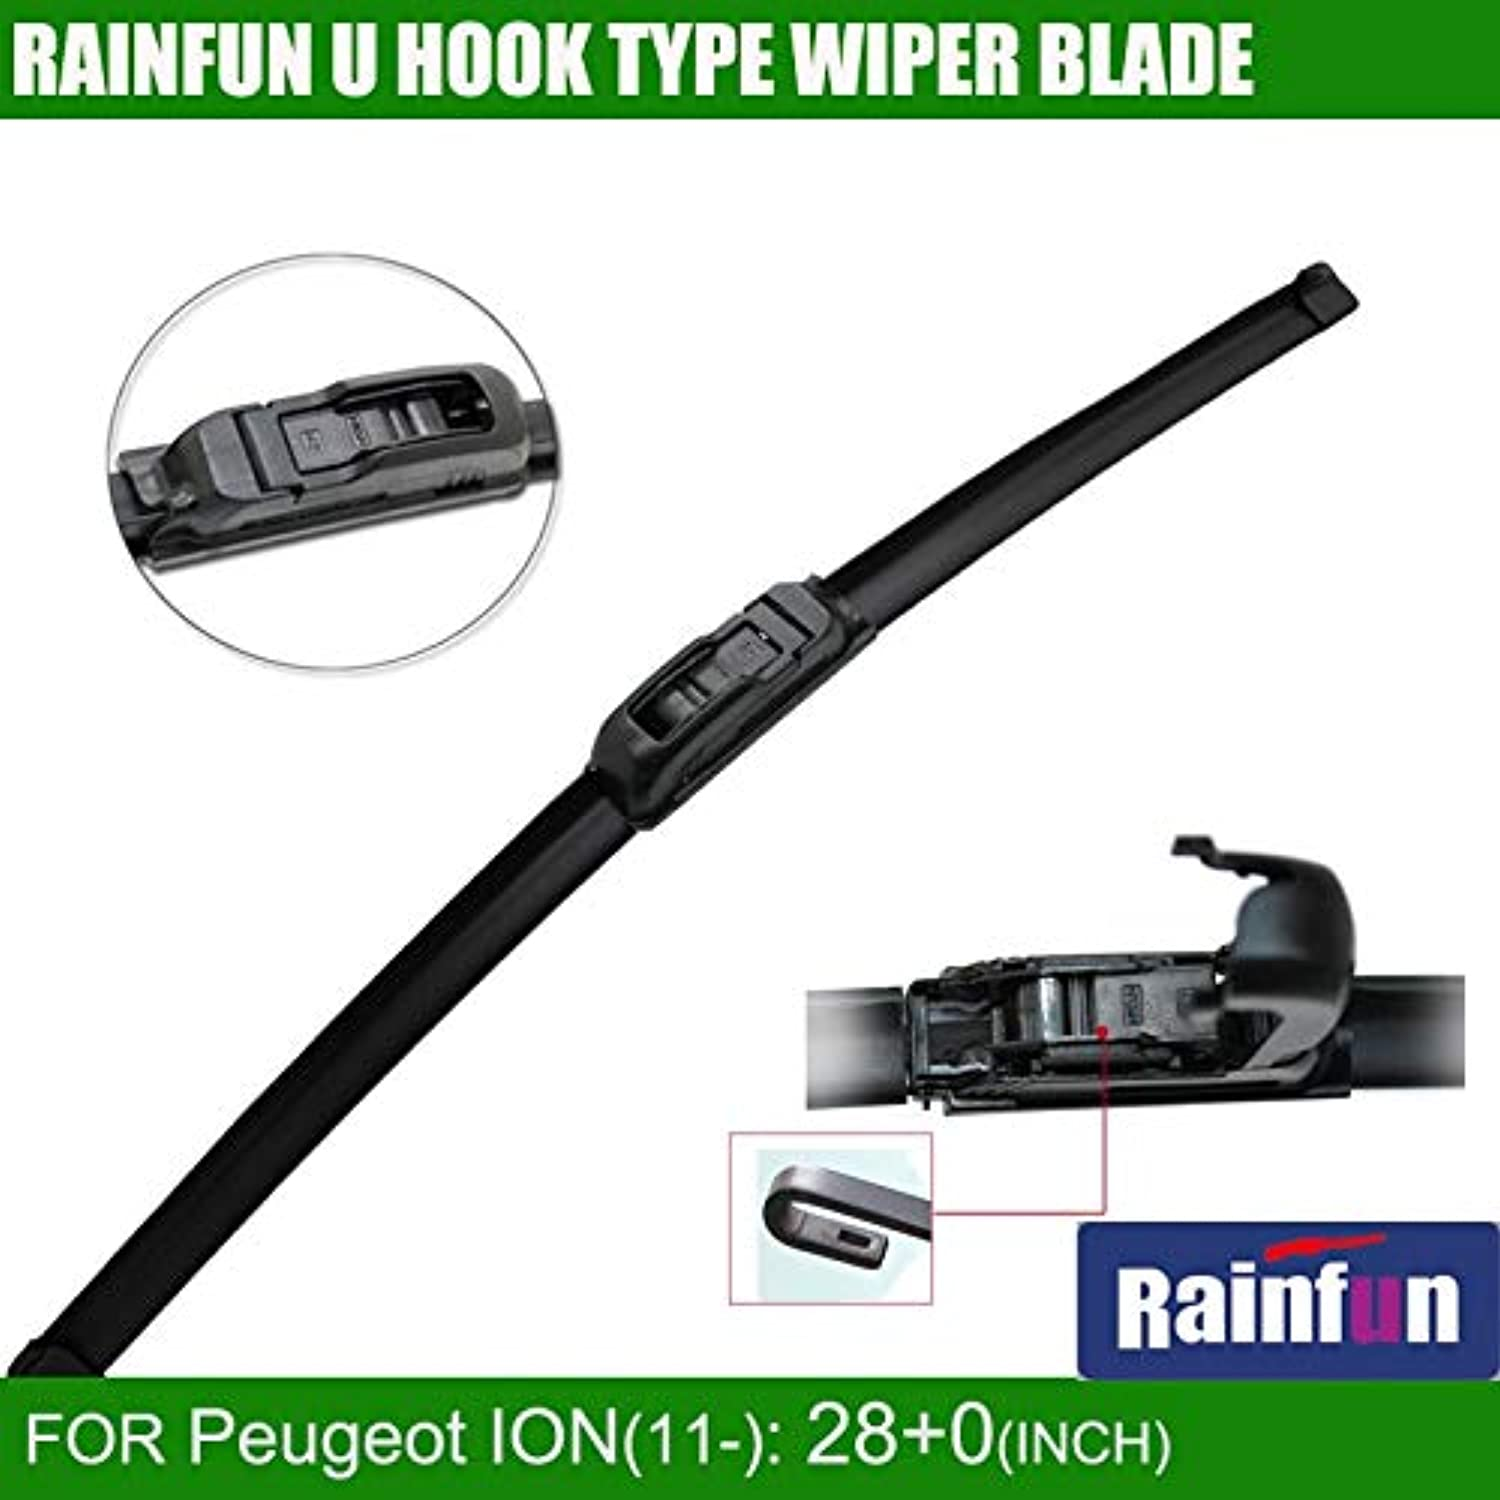 Wipers Rainfun Jh001 28 +0  Dedicated Car Wiper Blade for Peugeot Ion(11), 2Pcs A Lot